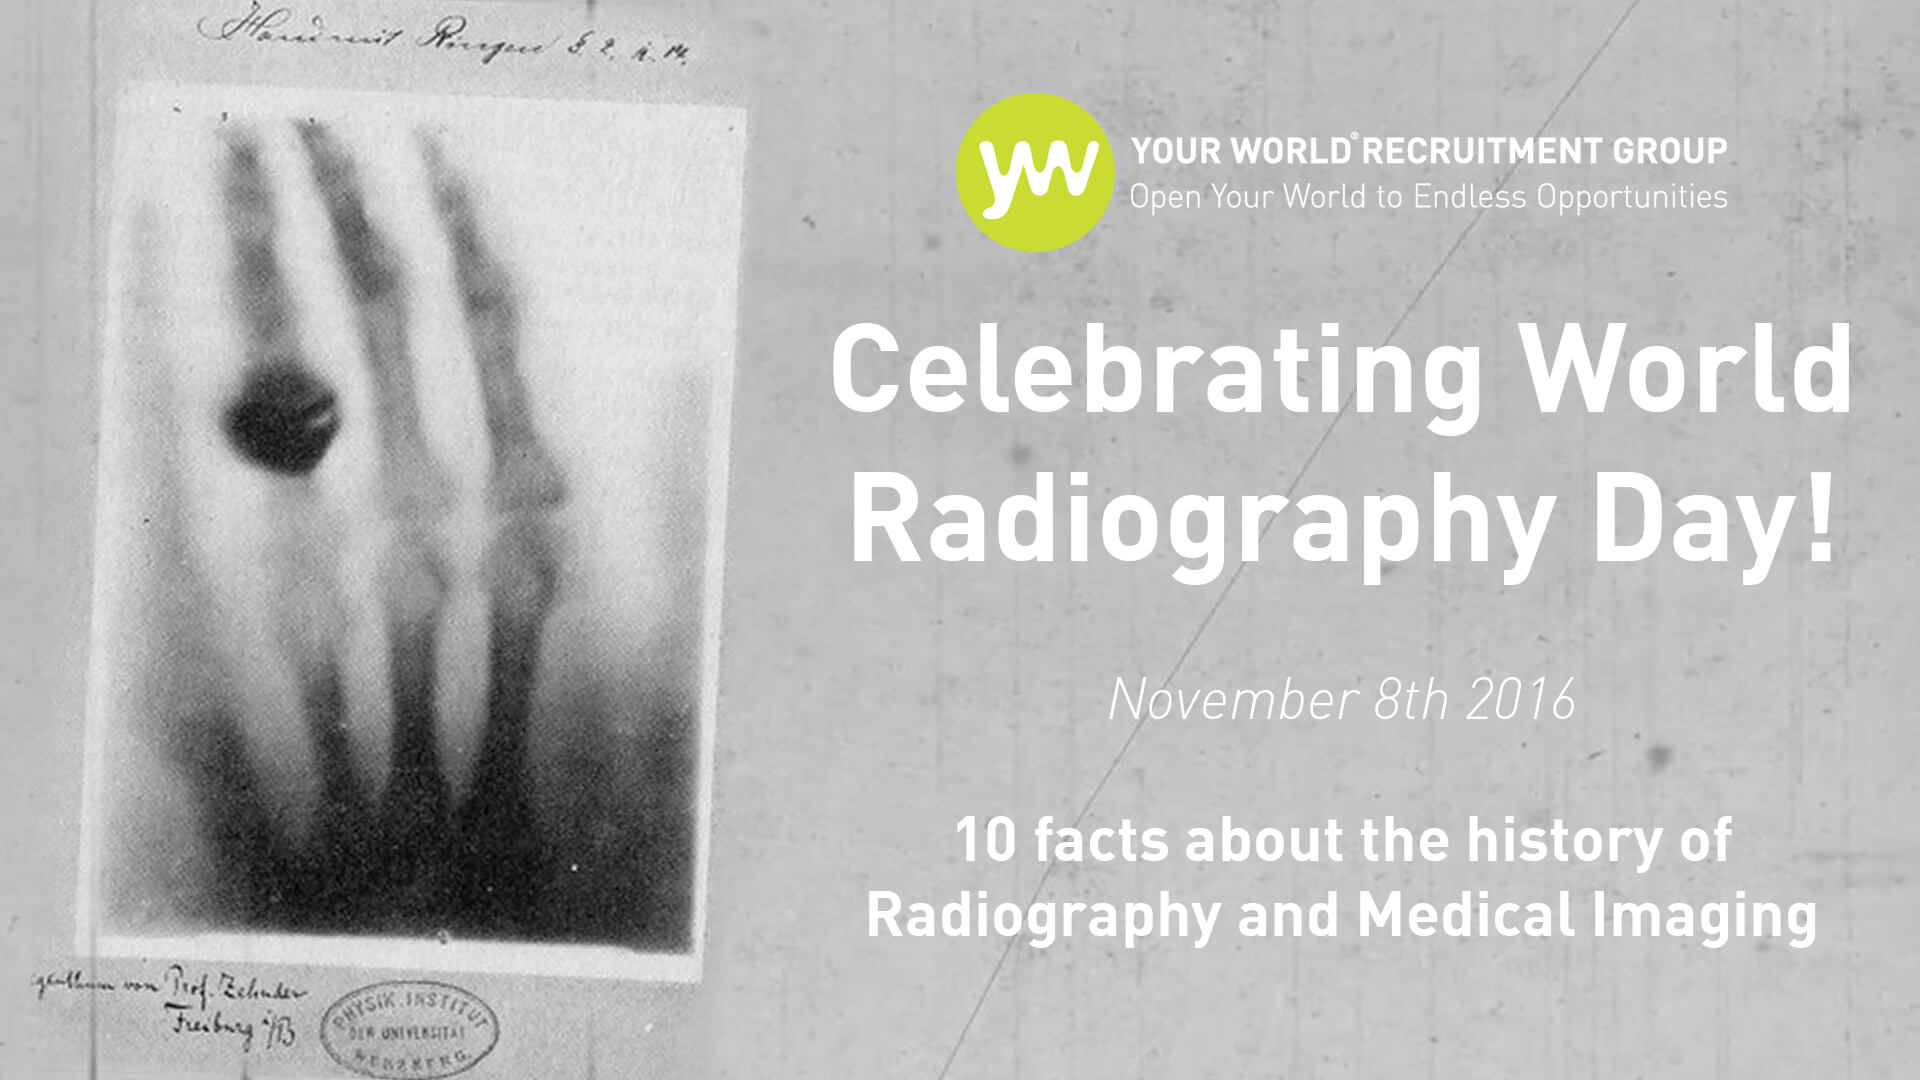 It's World Radiography Day!